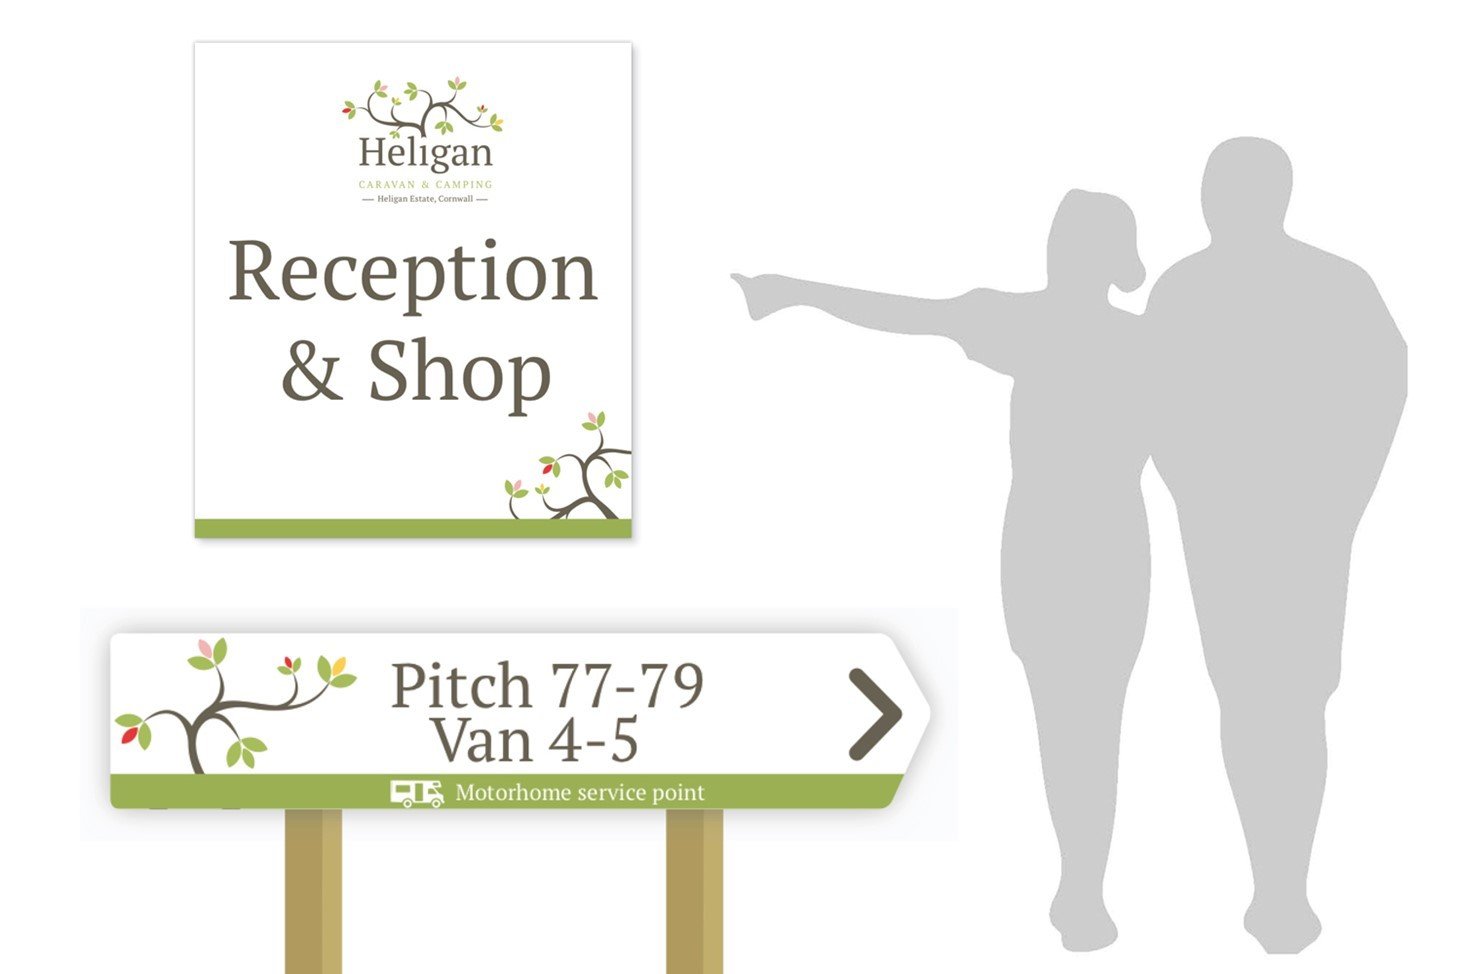 Heligan, camping and caravan, signs, signage, reception, green, design, Print, Cornwall, Design79, silhouettes